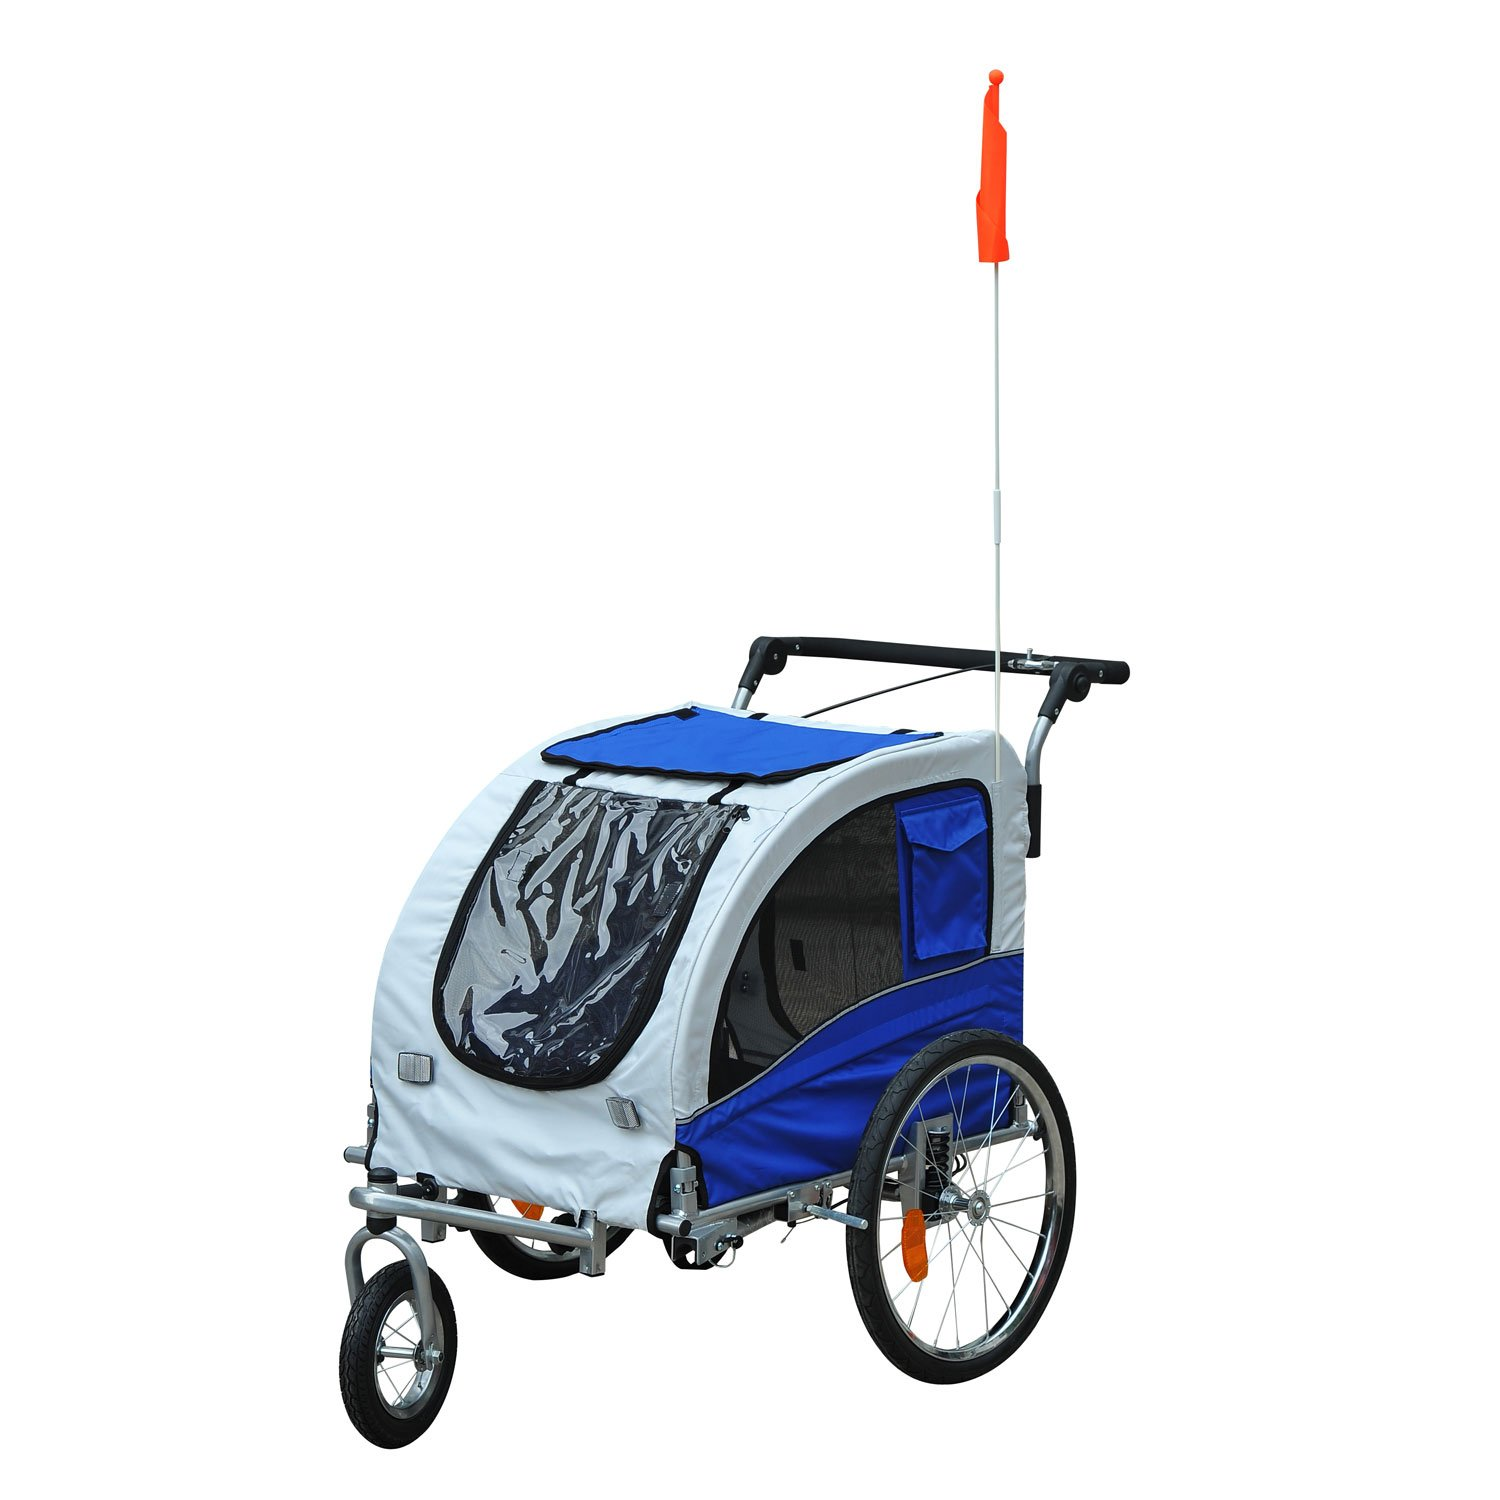 Aosom Elite II 2-in-1 Pet Dog Bike Trailer and Stroller with Suspension and Storage Pockets - Blue